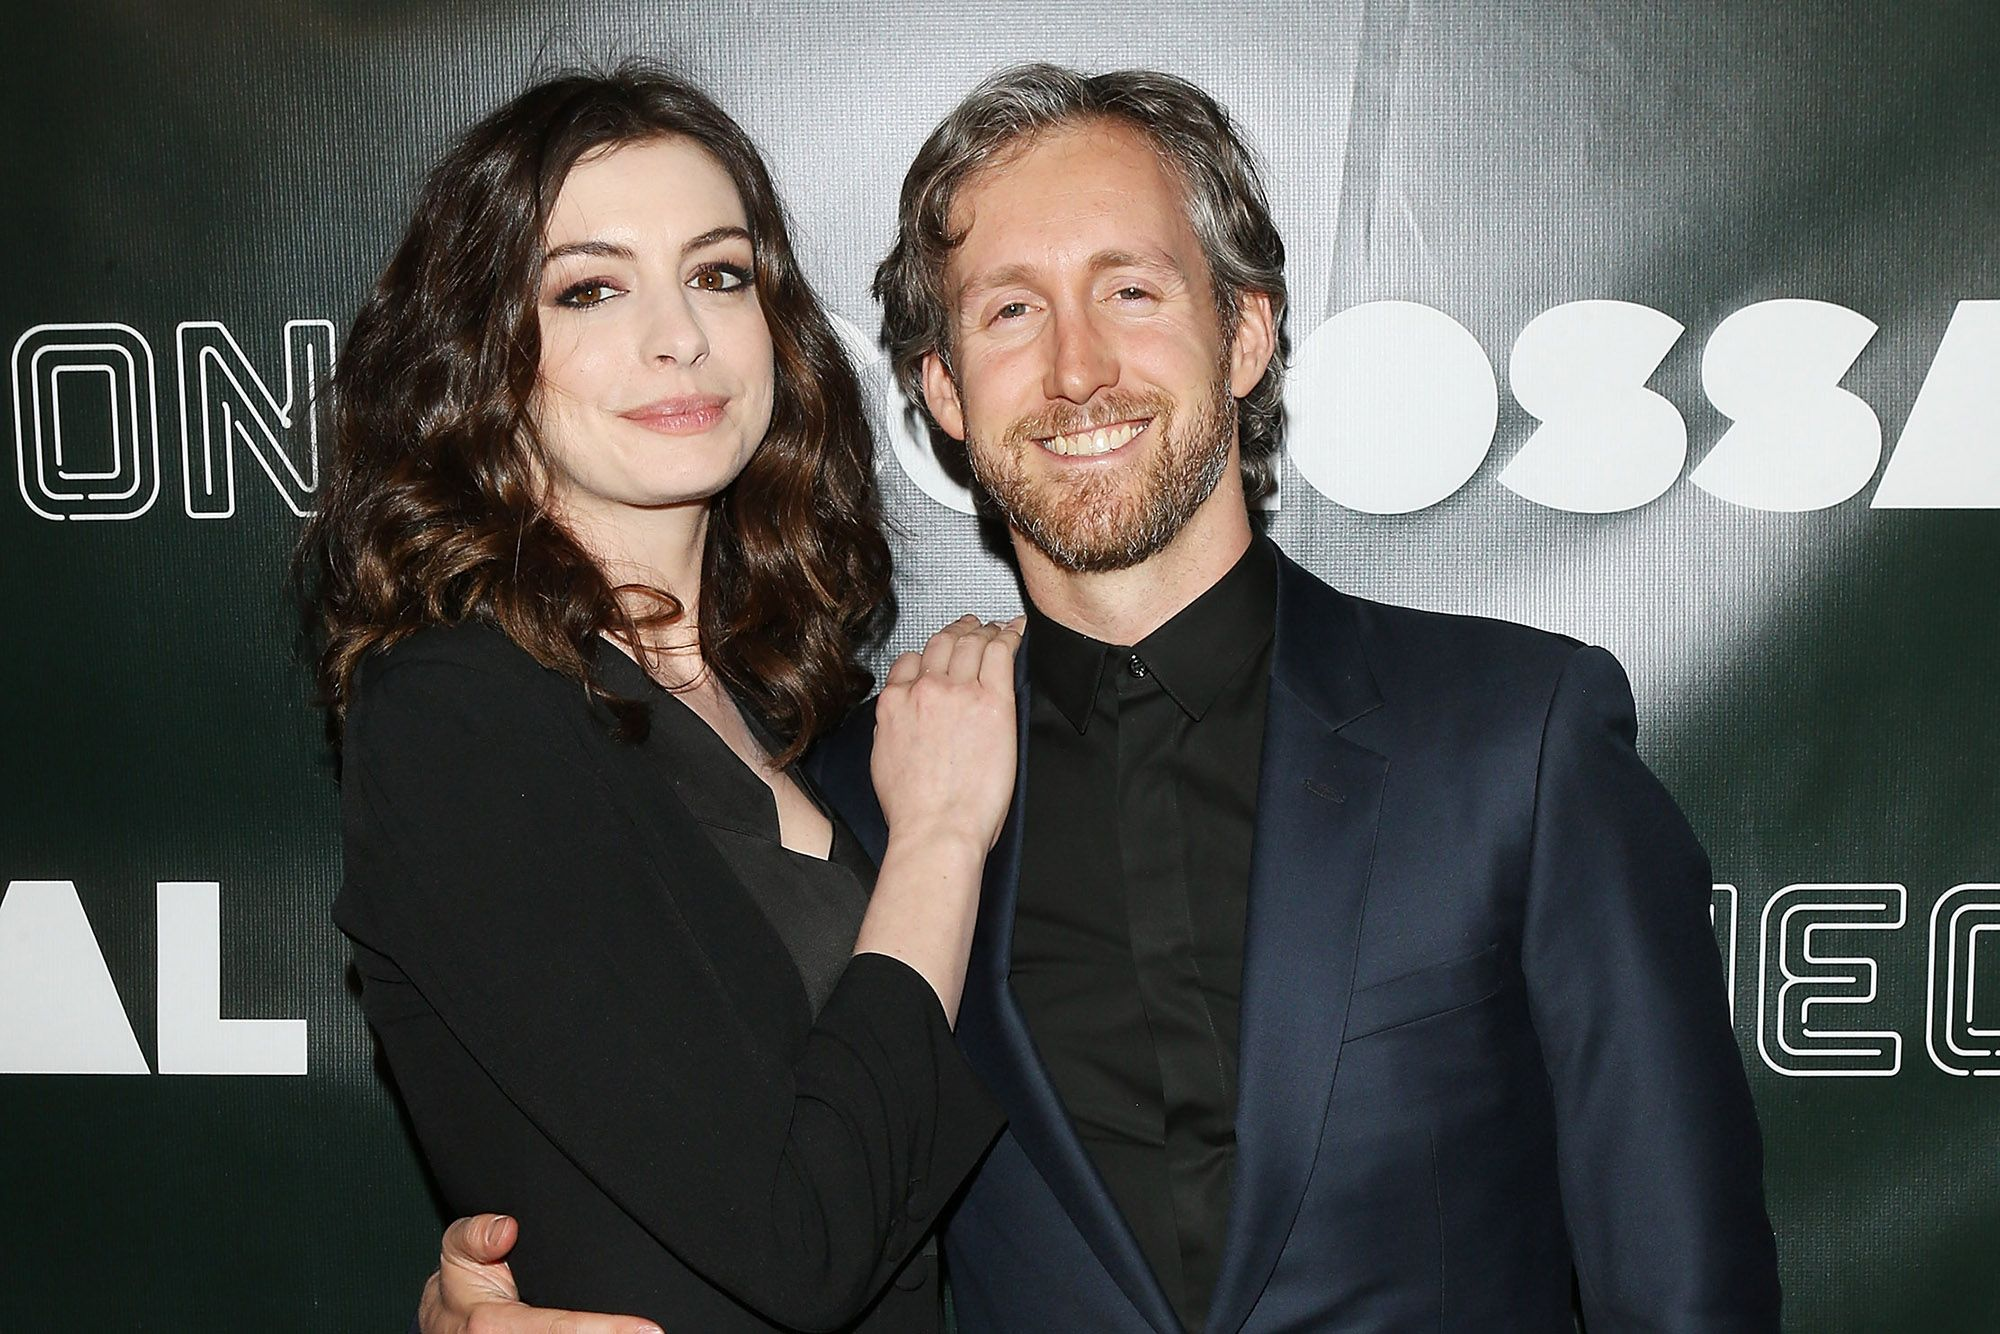 https://pagesix.com/2018/08/10/anne-hathaway-gets-cozy-with-husband-adam-shulman-at-miami-hot-spot/